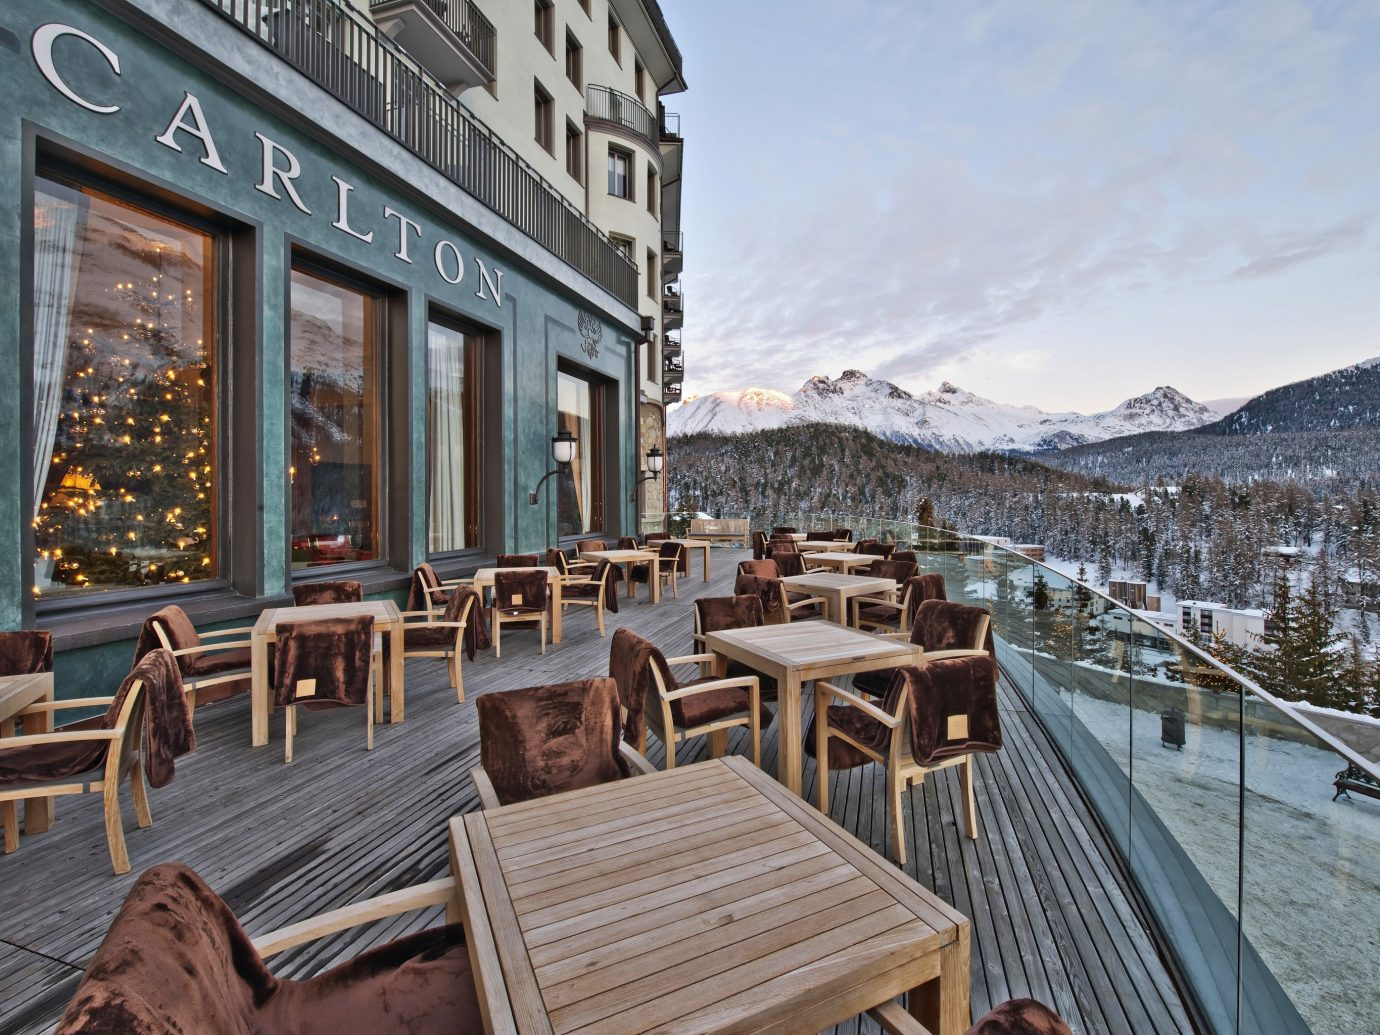 Tables on a deck at the Hotel Carlton in St. Moritz Switzerland